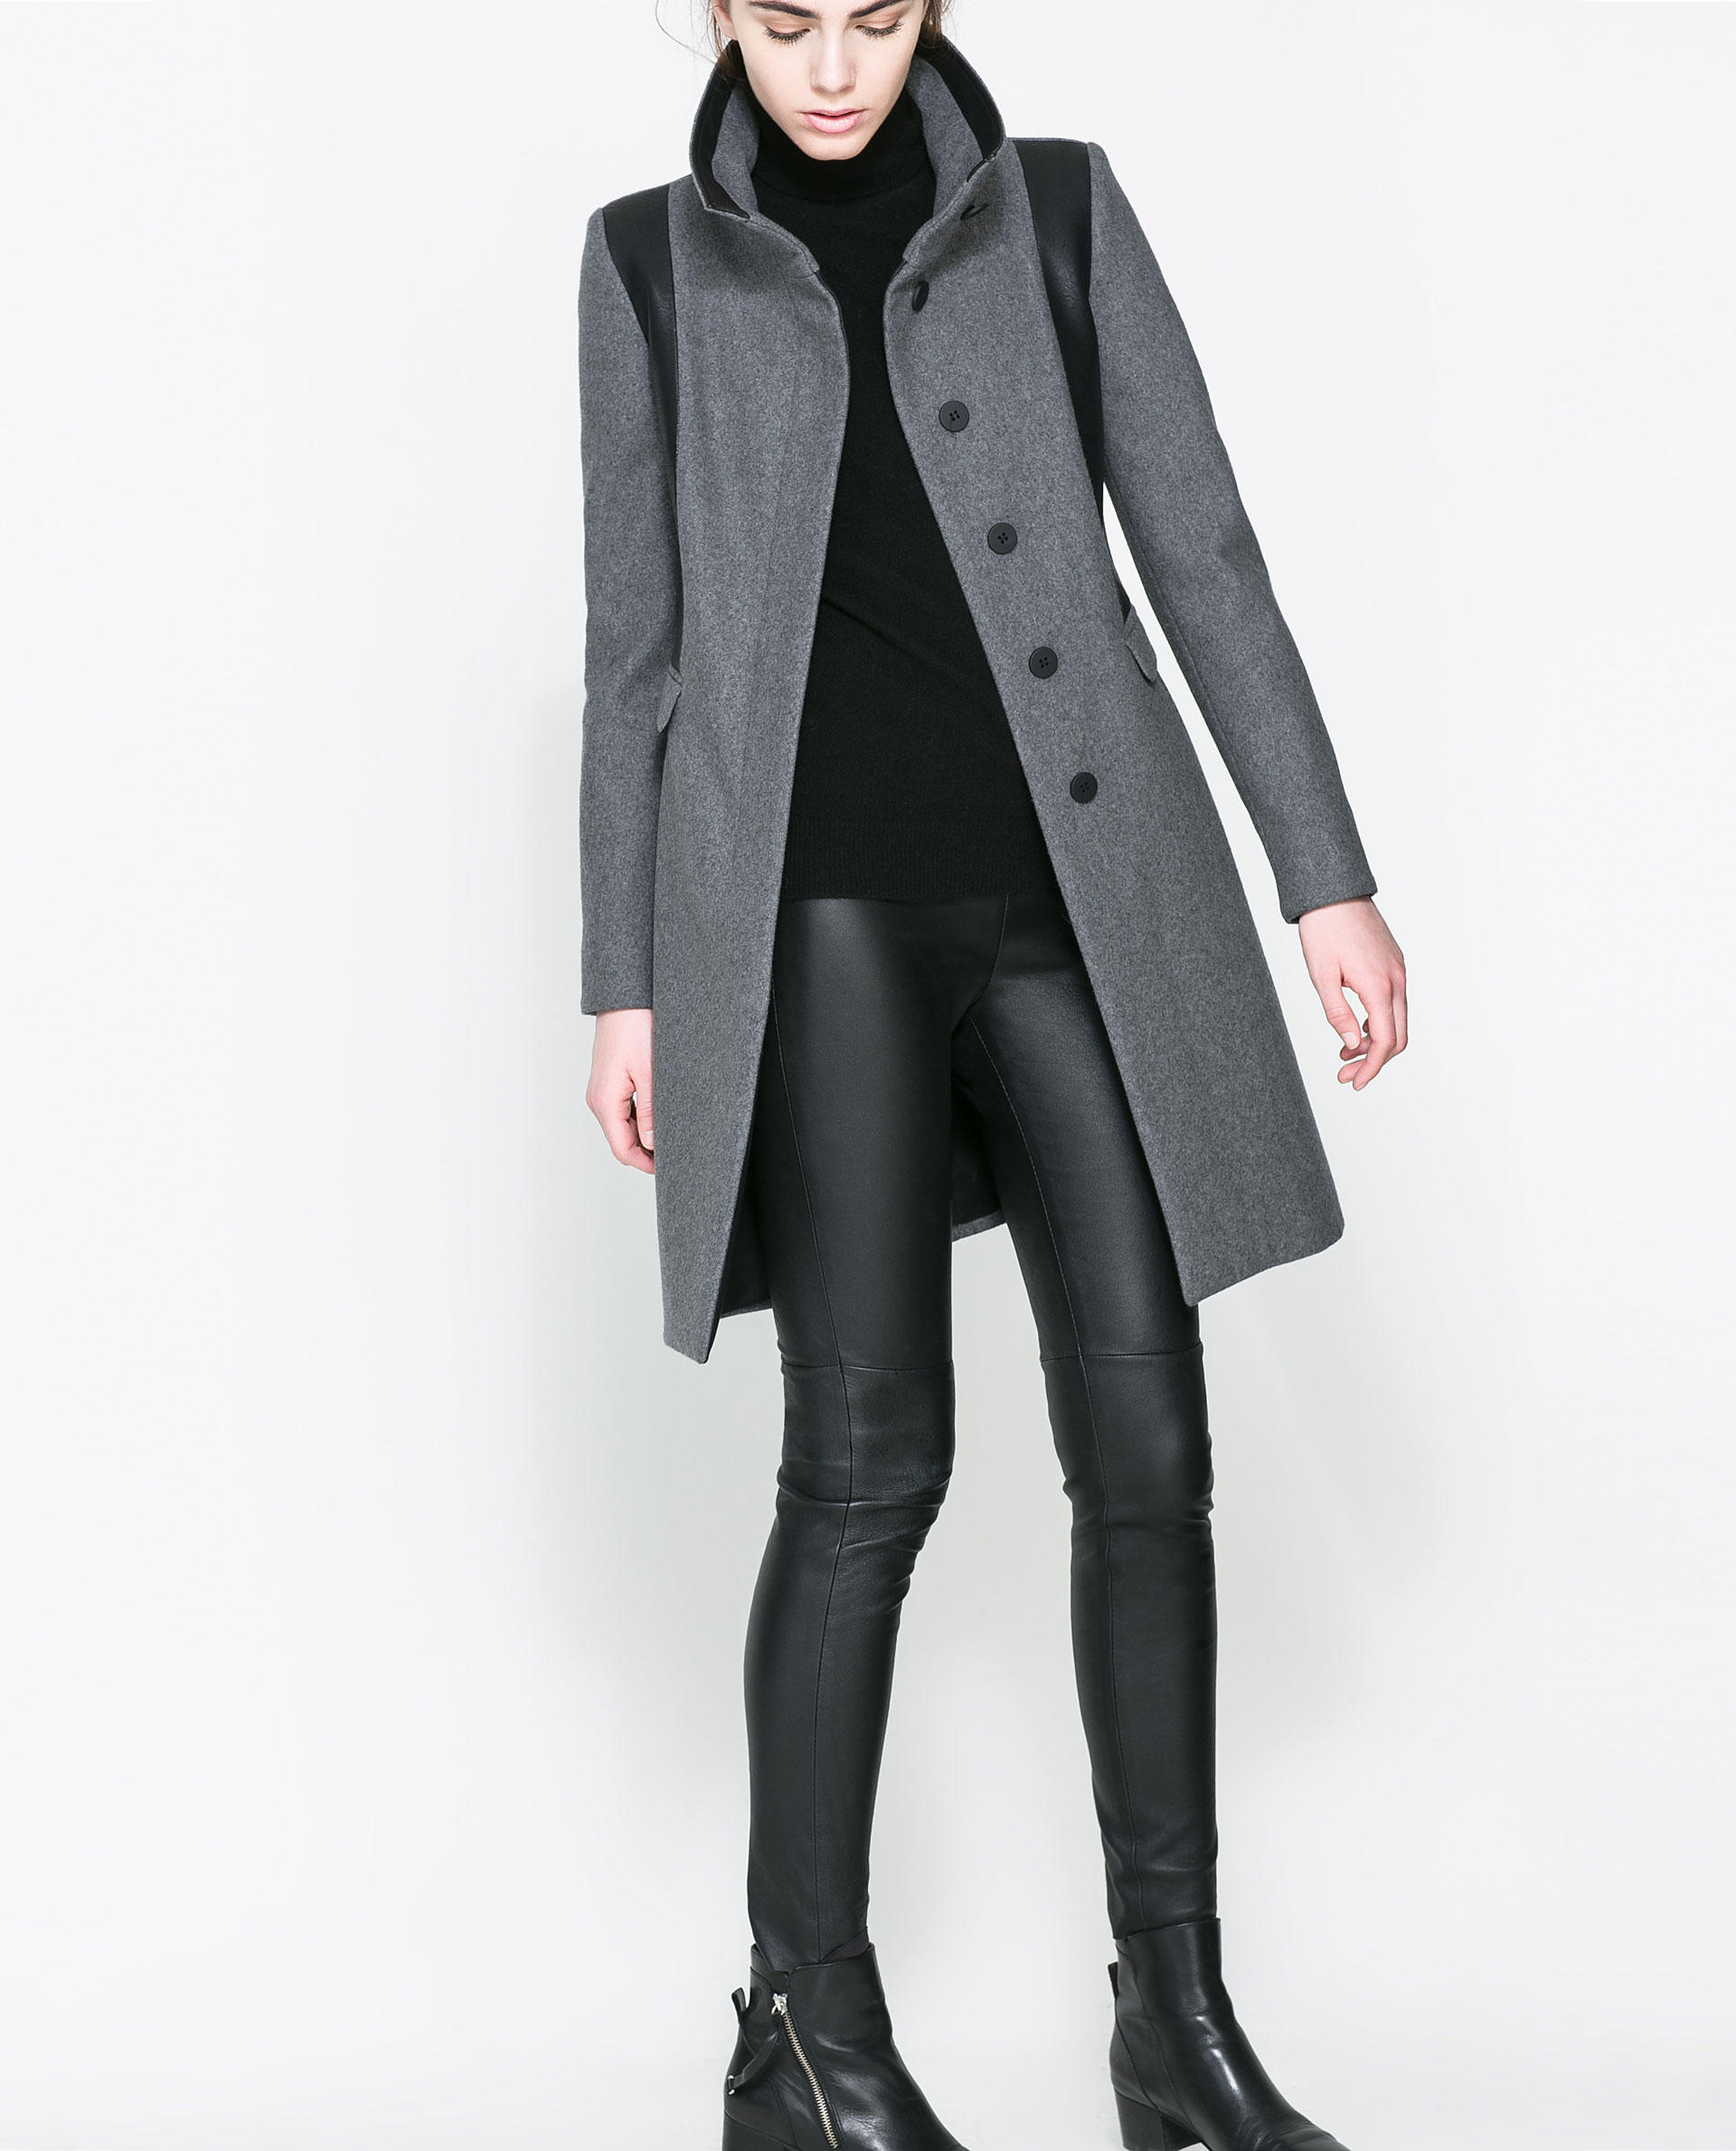 Zara Combined Wool Coat In Gray Grey Marl Lyst